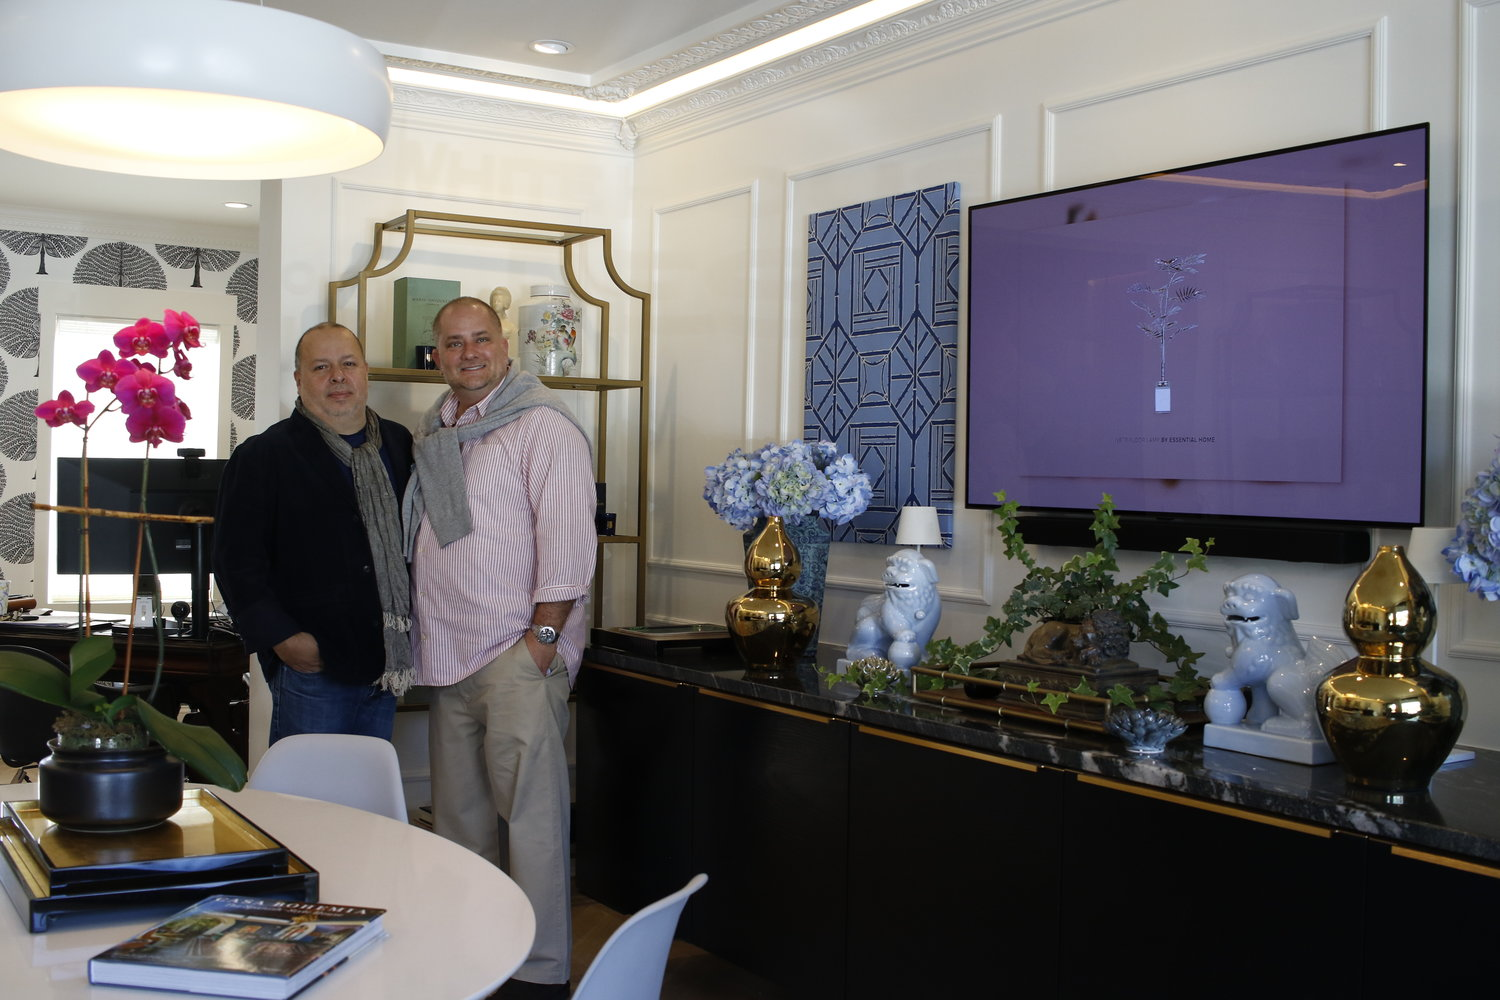 White House Home co-owners William Mera, left, and Joseph DeVito showcased their new shop.